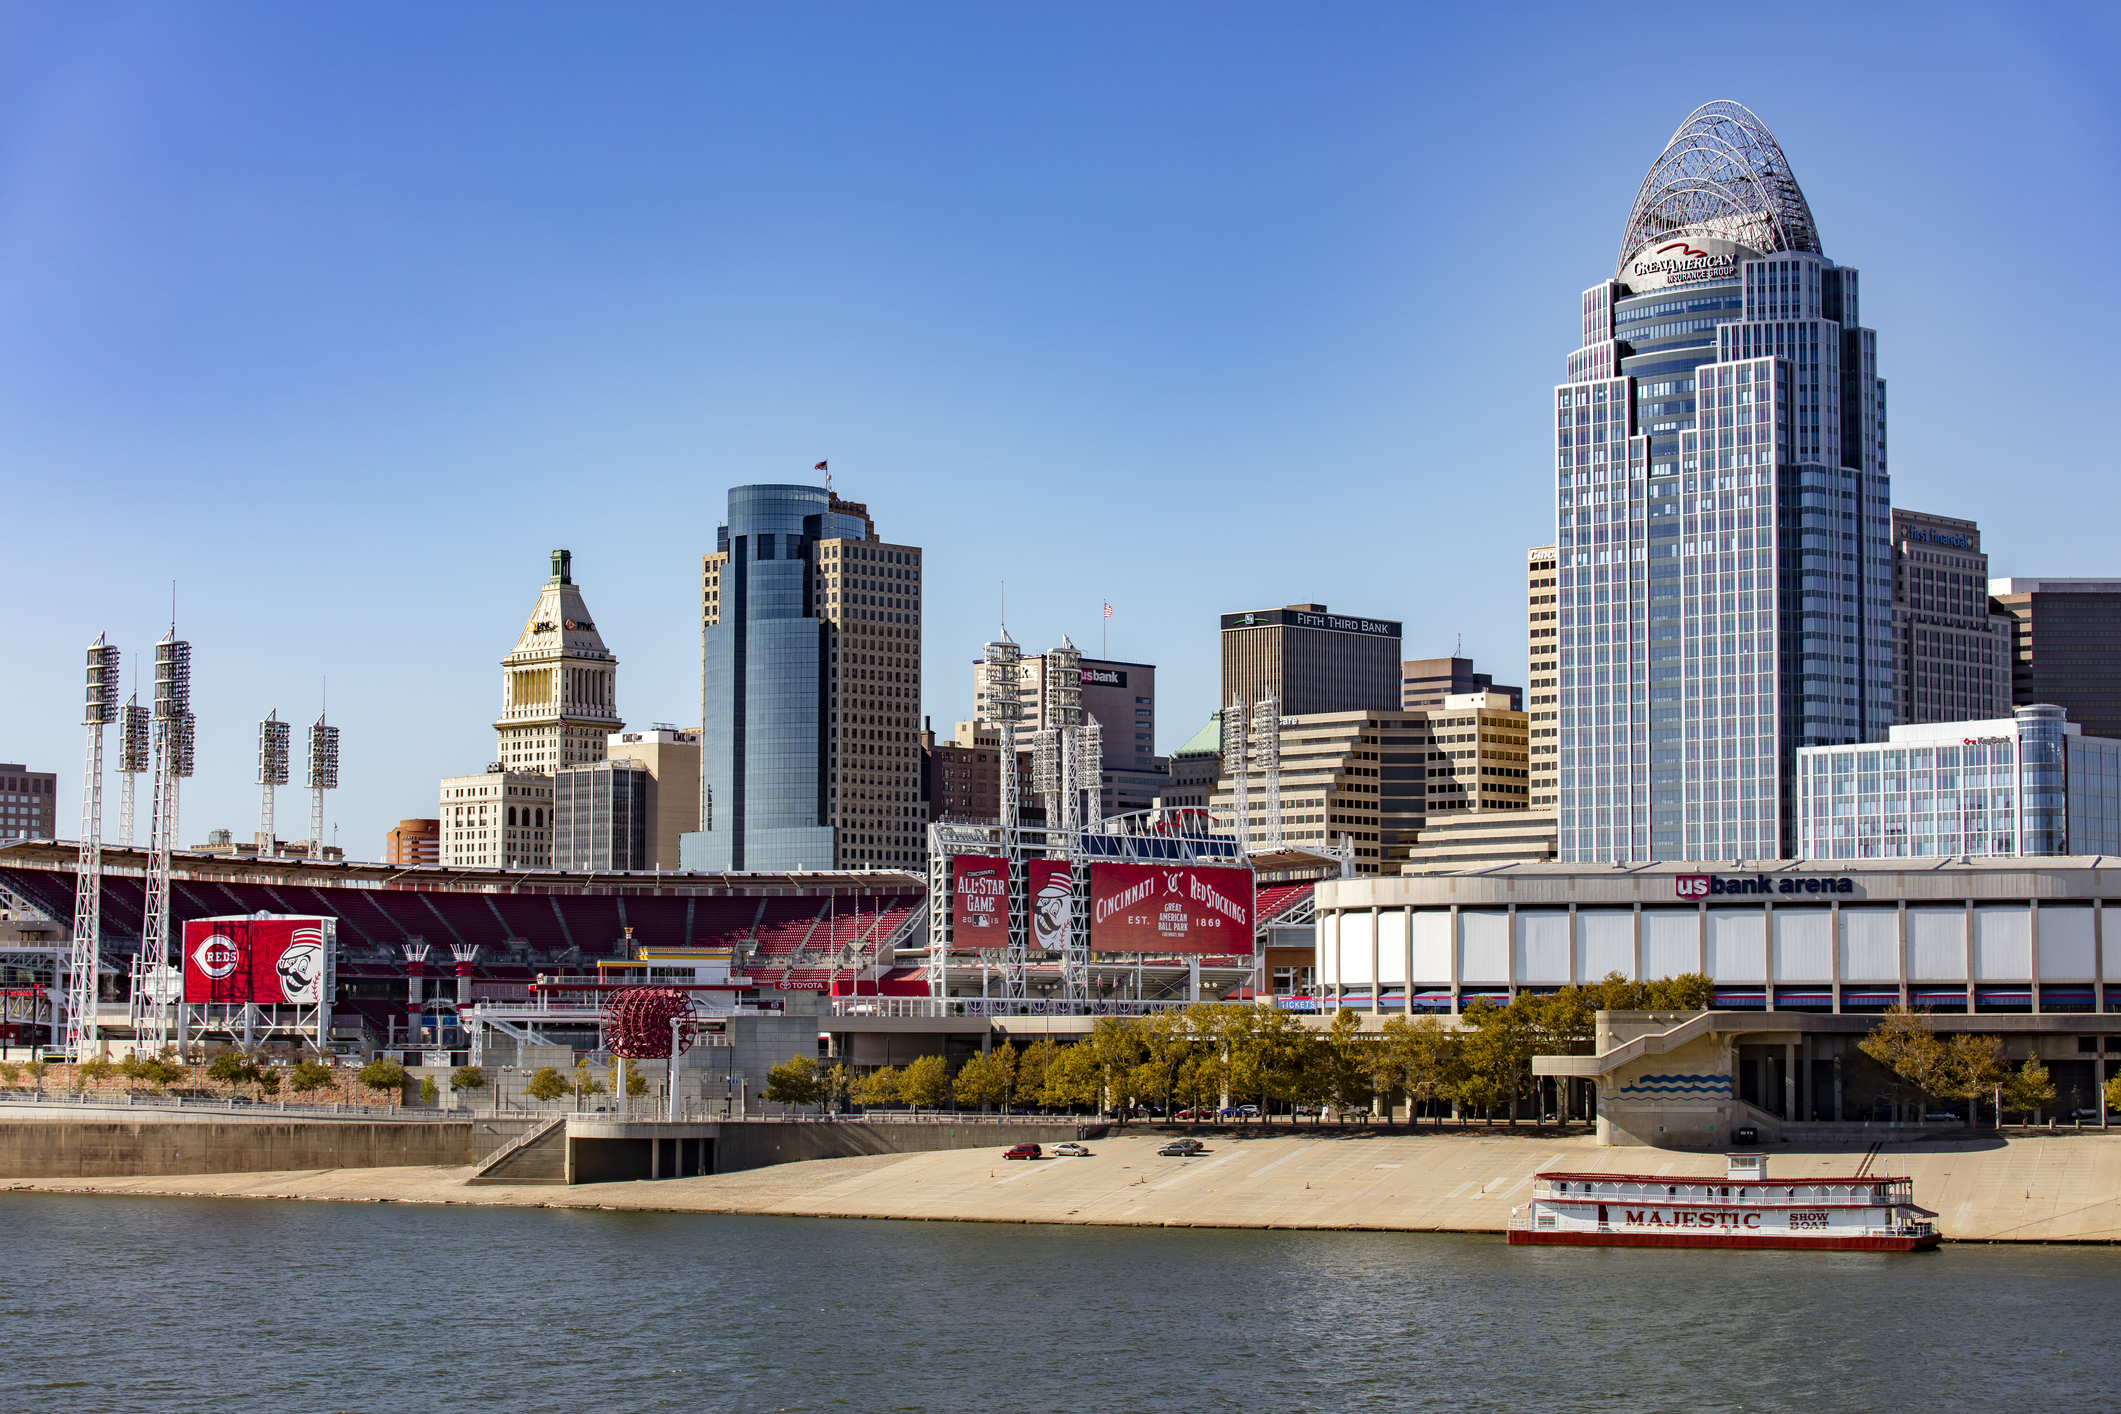 Cincinnati - Looking back